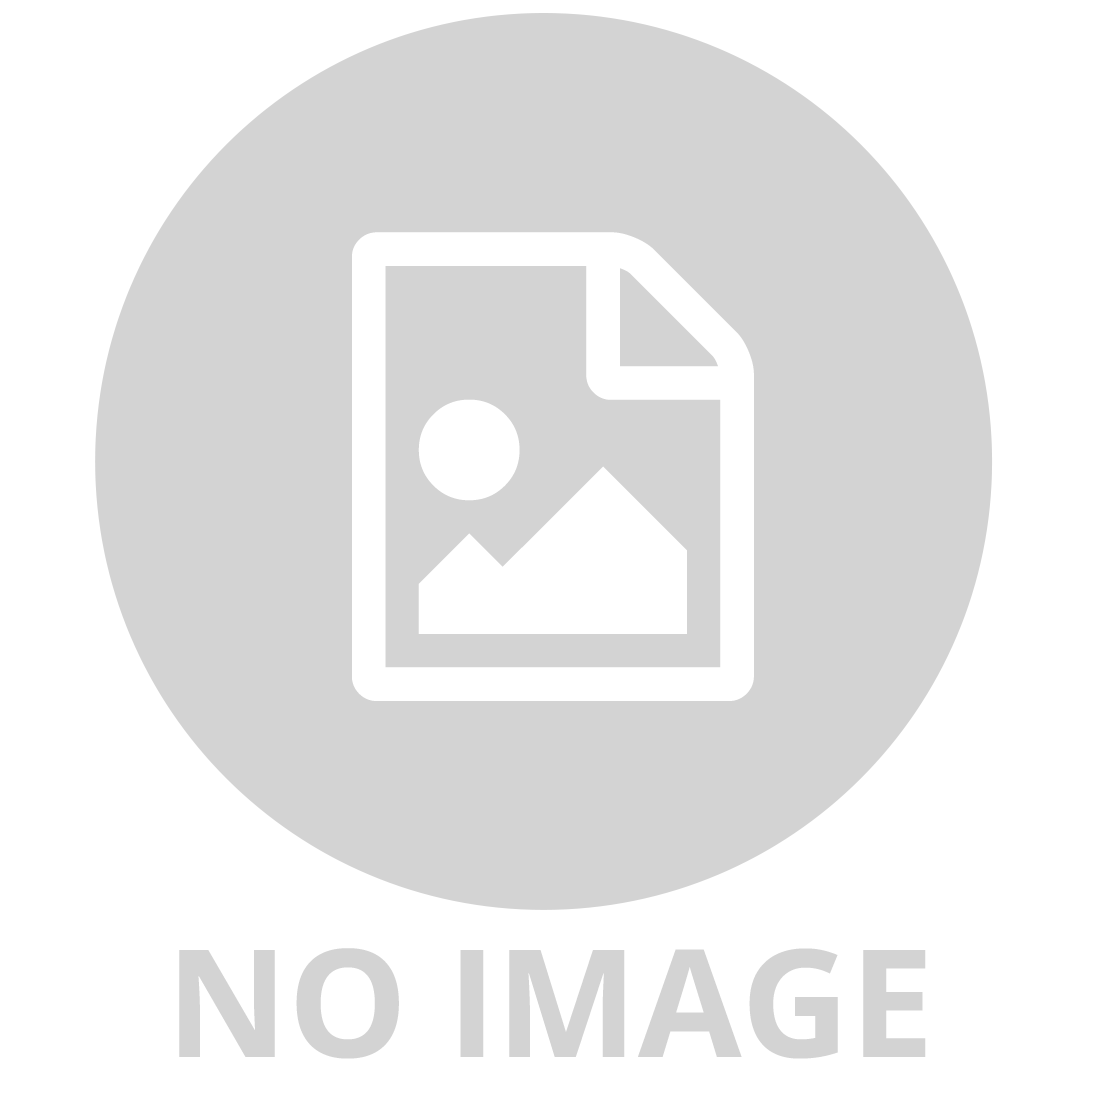 TIKKTOKK BOSS WOODEN CHAIR